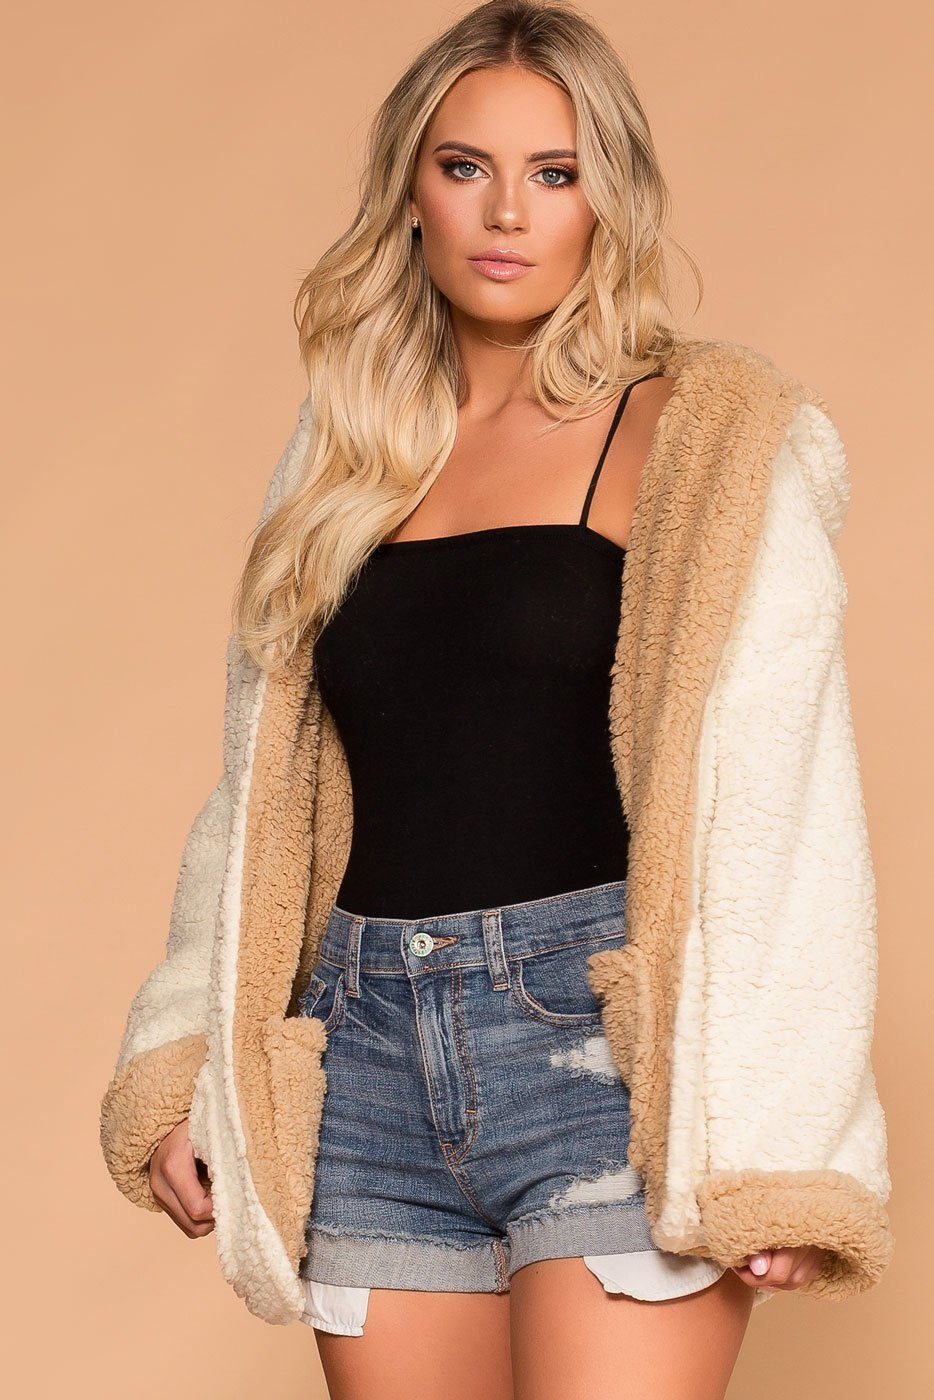 Marshmallow Fluff Taupe Sherpa Jacket by Priceless